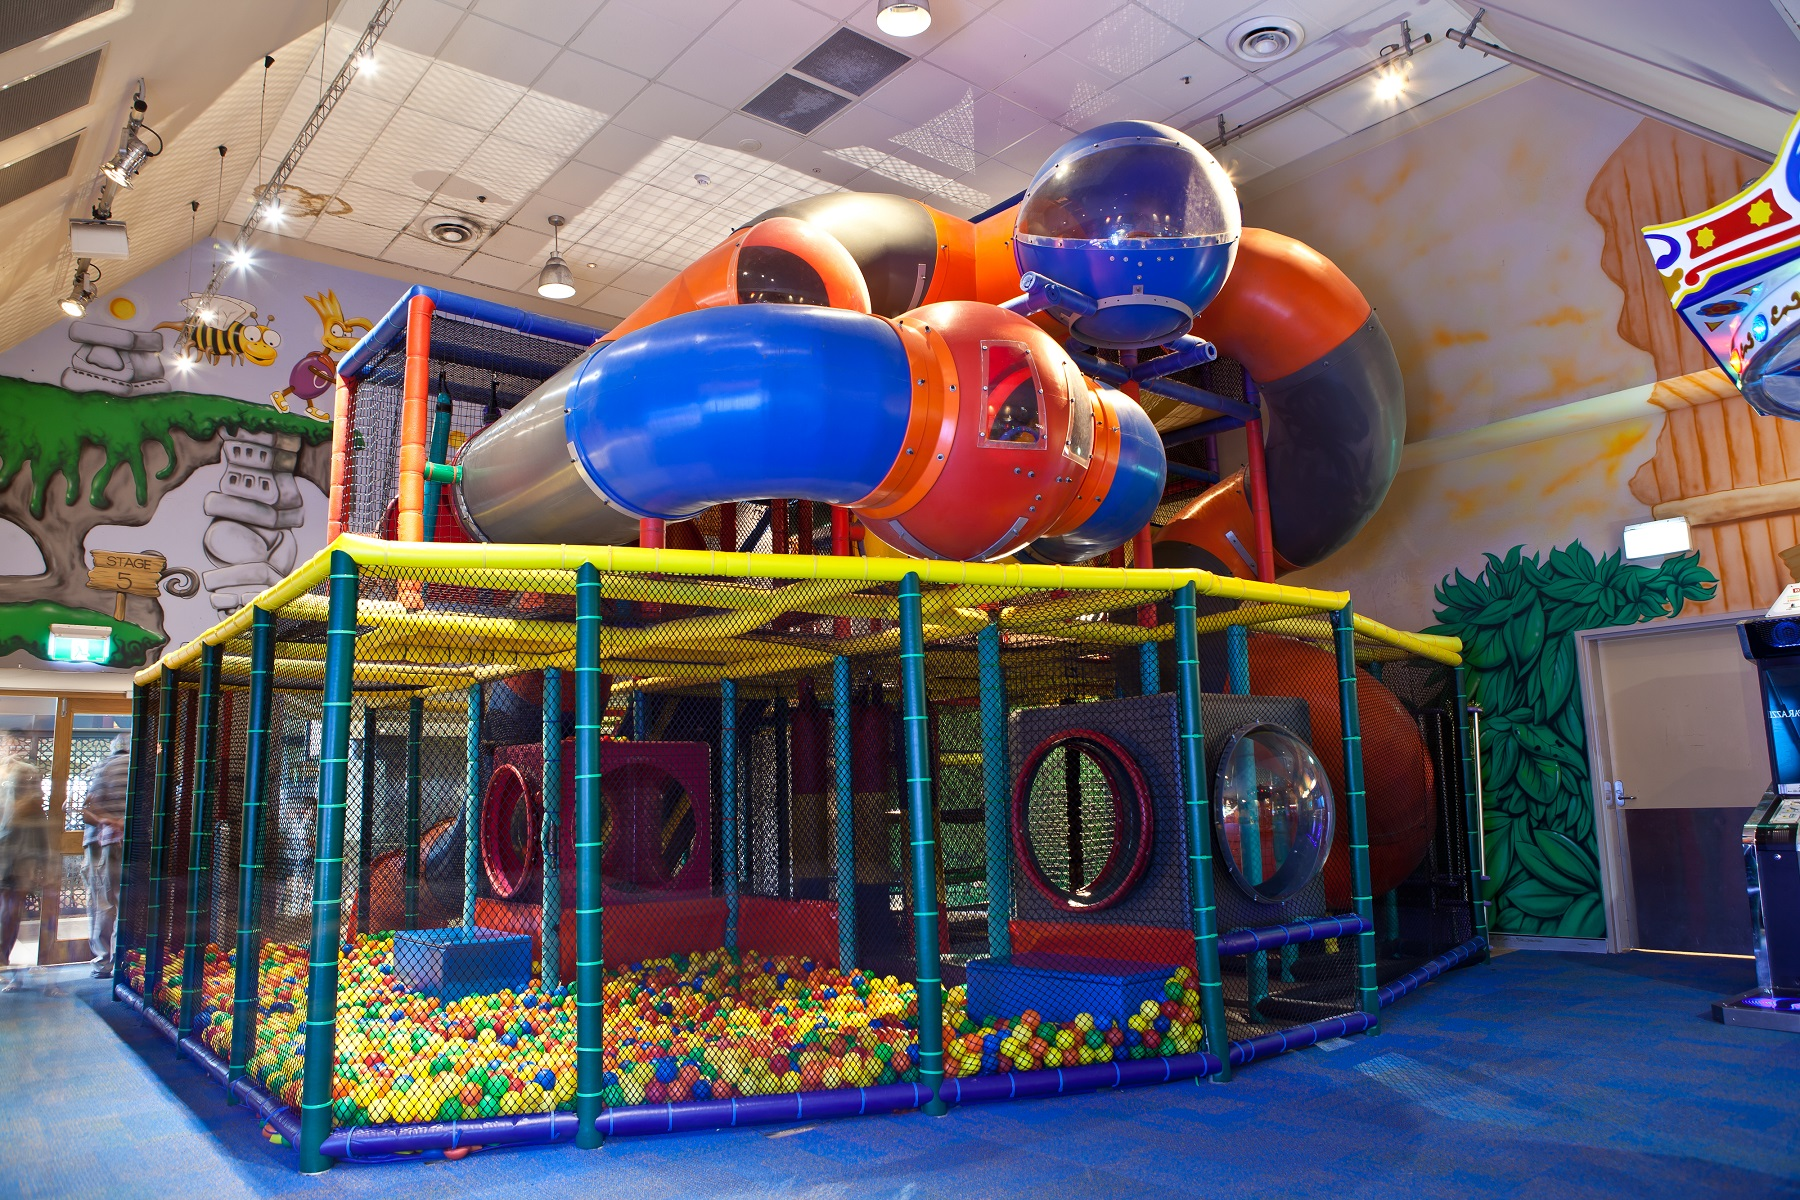 14 Local Cafes, Hotels and Clubs with a Kids Play Area